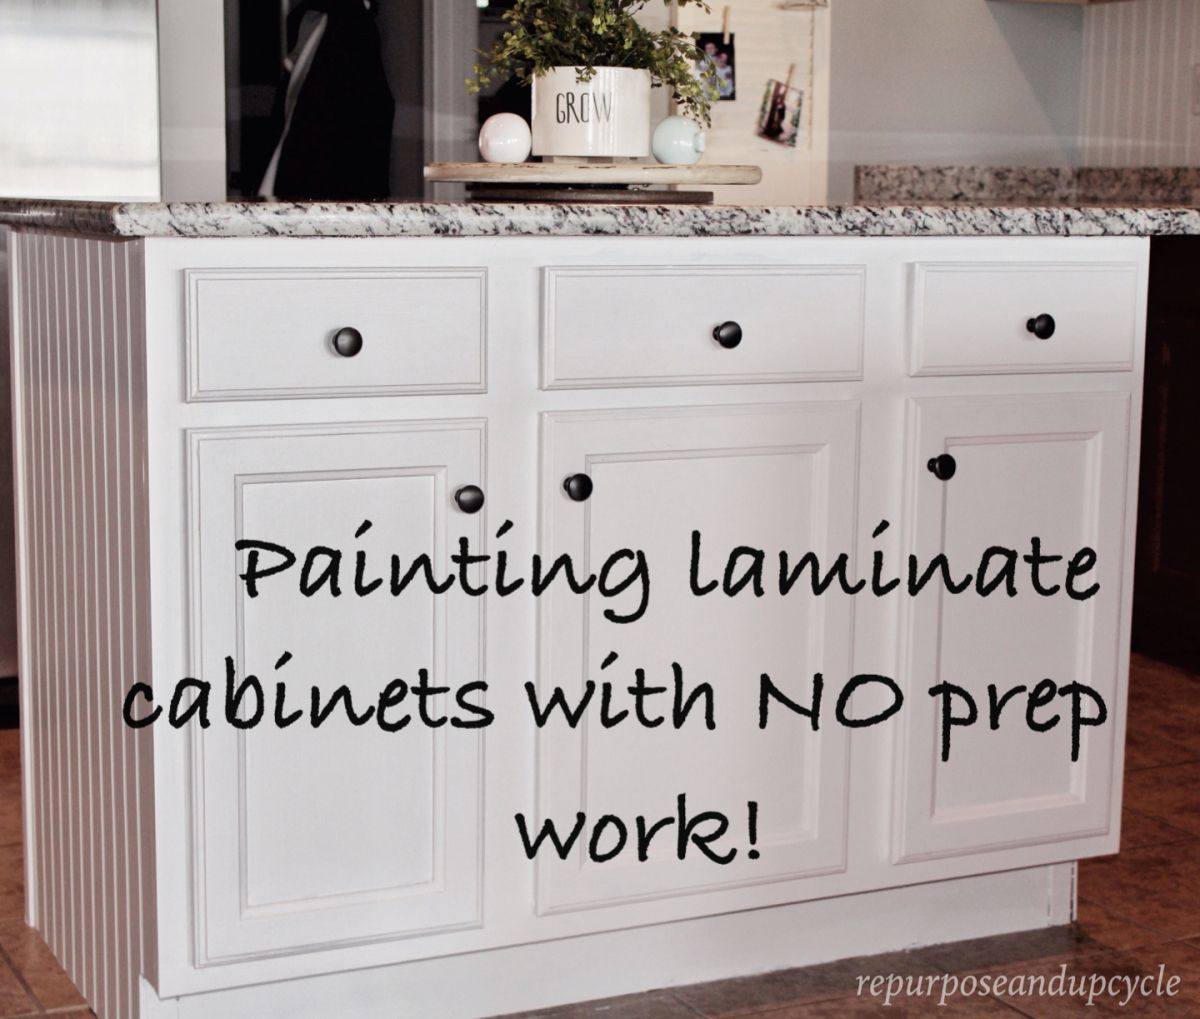 Painting Laminate Cabinets With No Prep Work Painting Laminate Kitchen Cabinets Laminate Cabinets Painting Laminate Cabinets